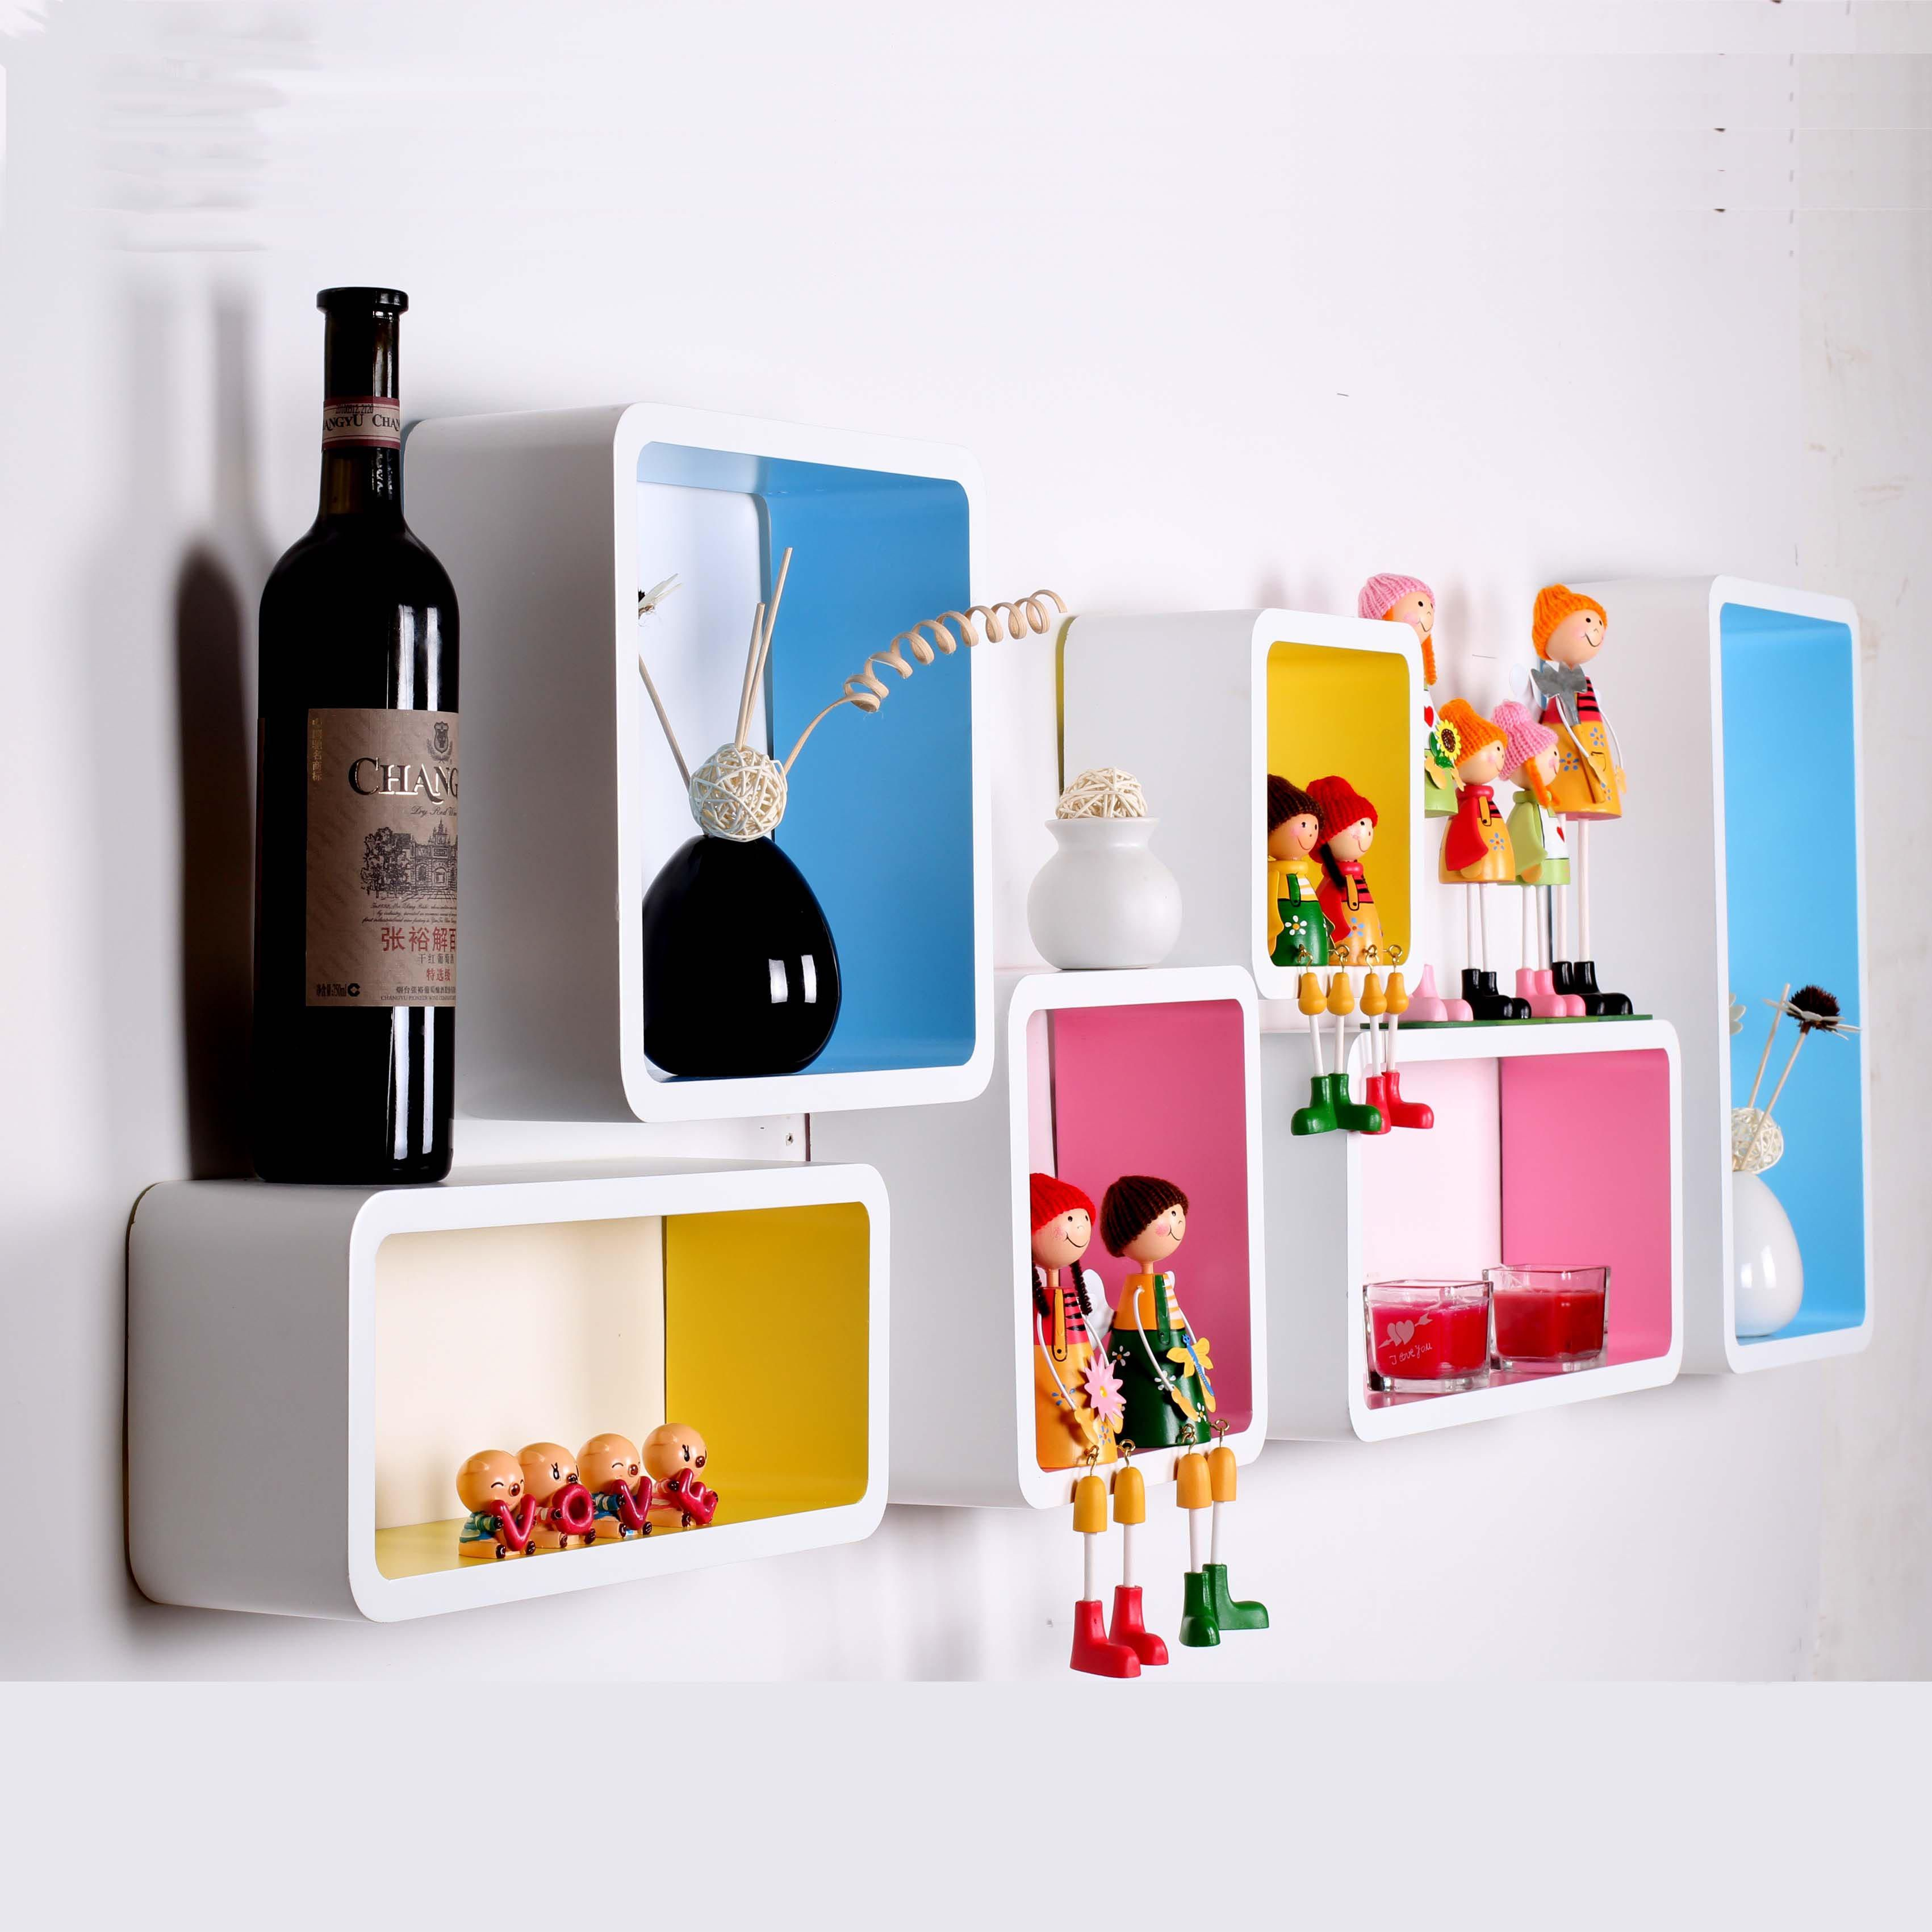 Cool Wall Shelves Design For Modern Teenage Bedroom Ideas. How To Build Wall  Mounted Shelves.